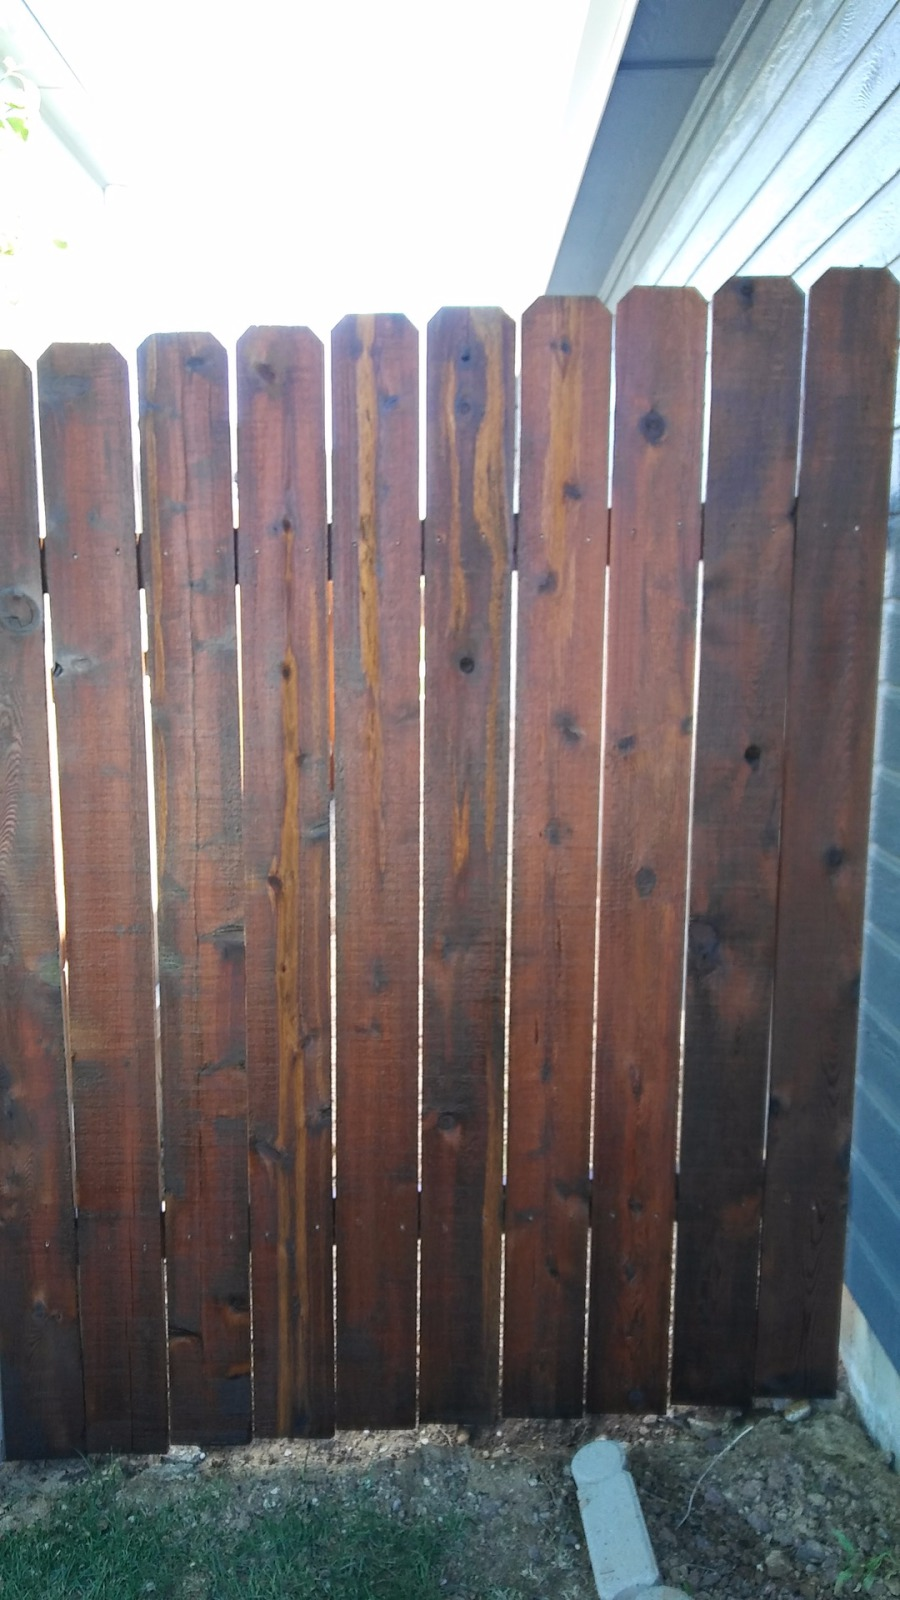 We Used A Solid Color Wood Stain On This Old Deck First Pressure Washed The Sanded Throughly Replaced Some Rotten Tightened And Pulled